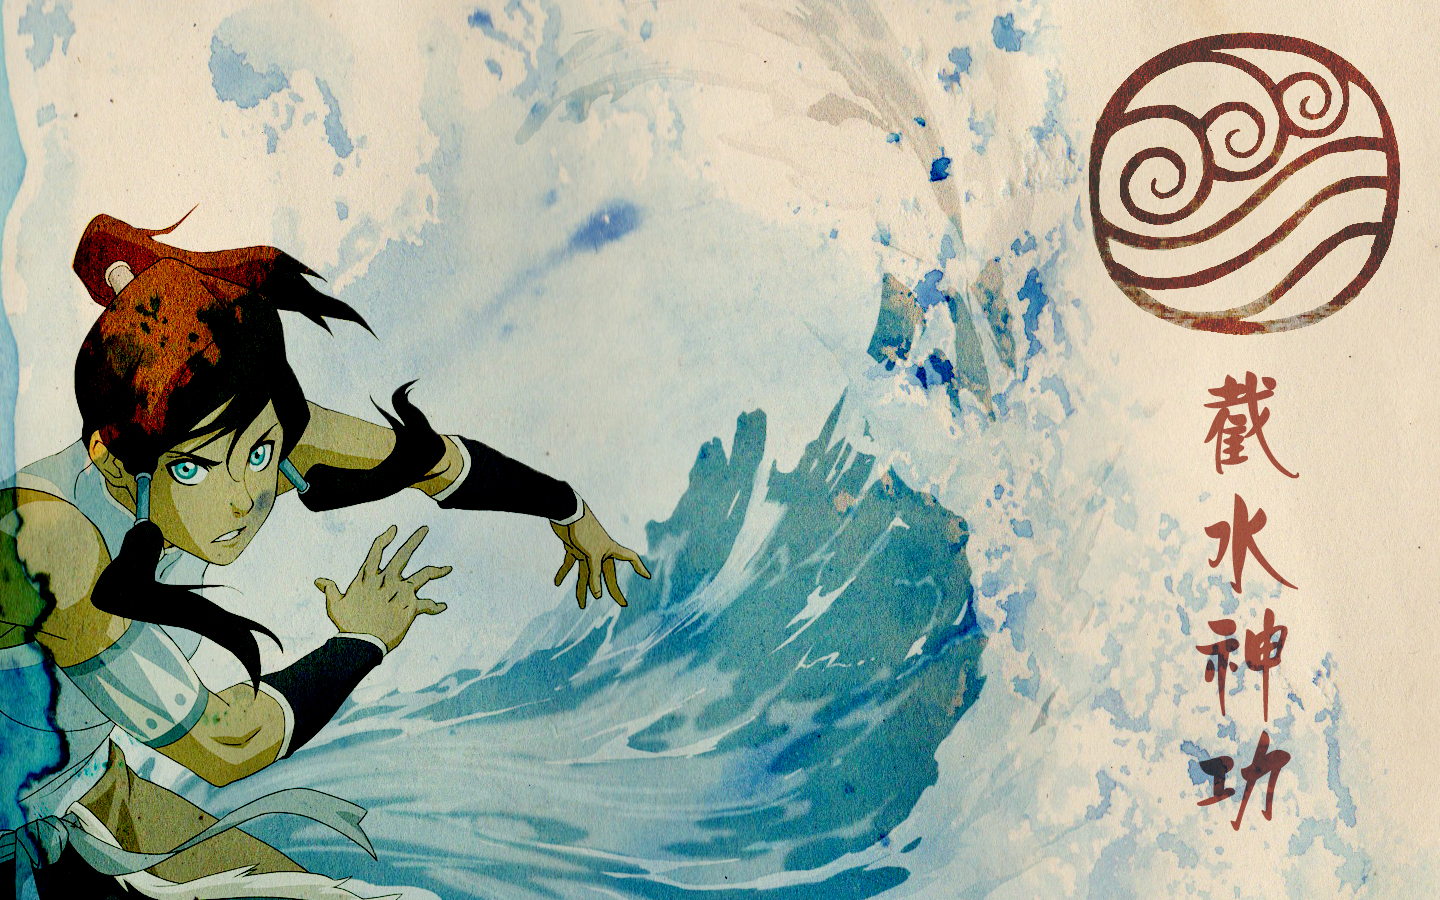 Best 52 Waterbending Wallpaper on HipWallpaper Toph 1440x900